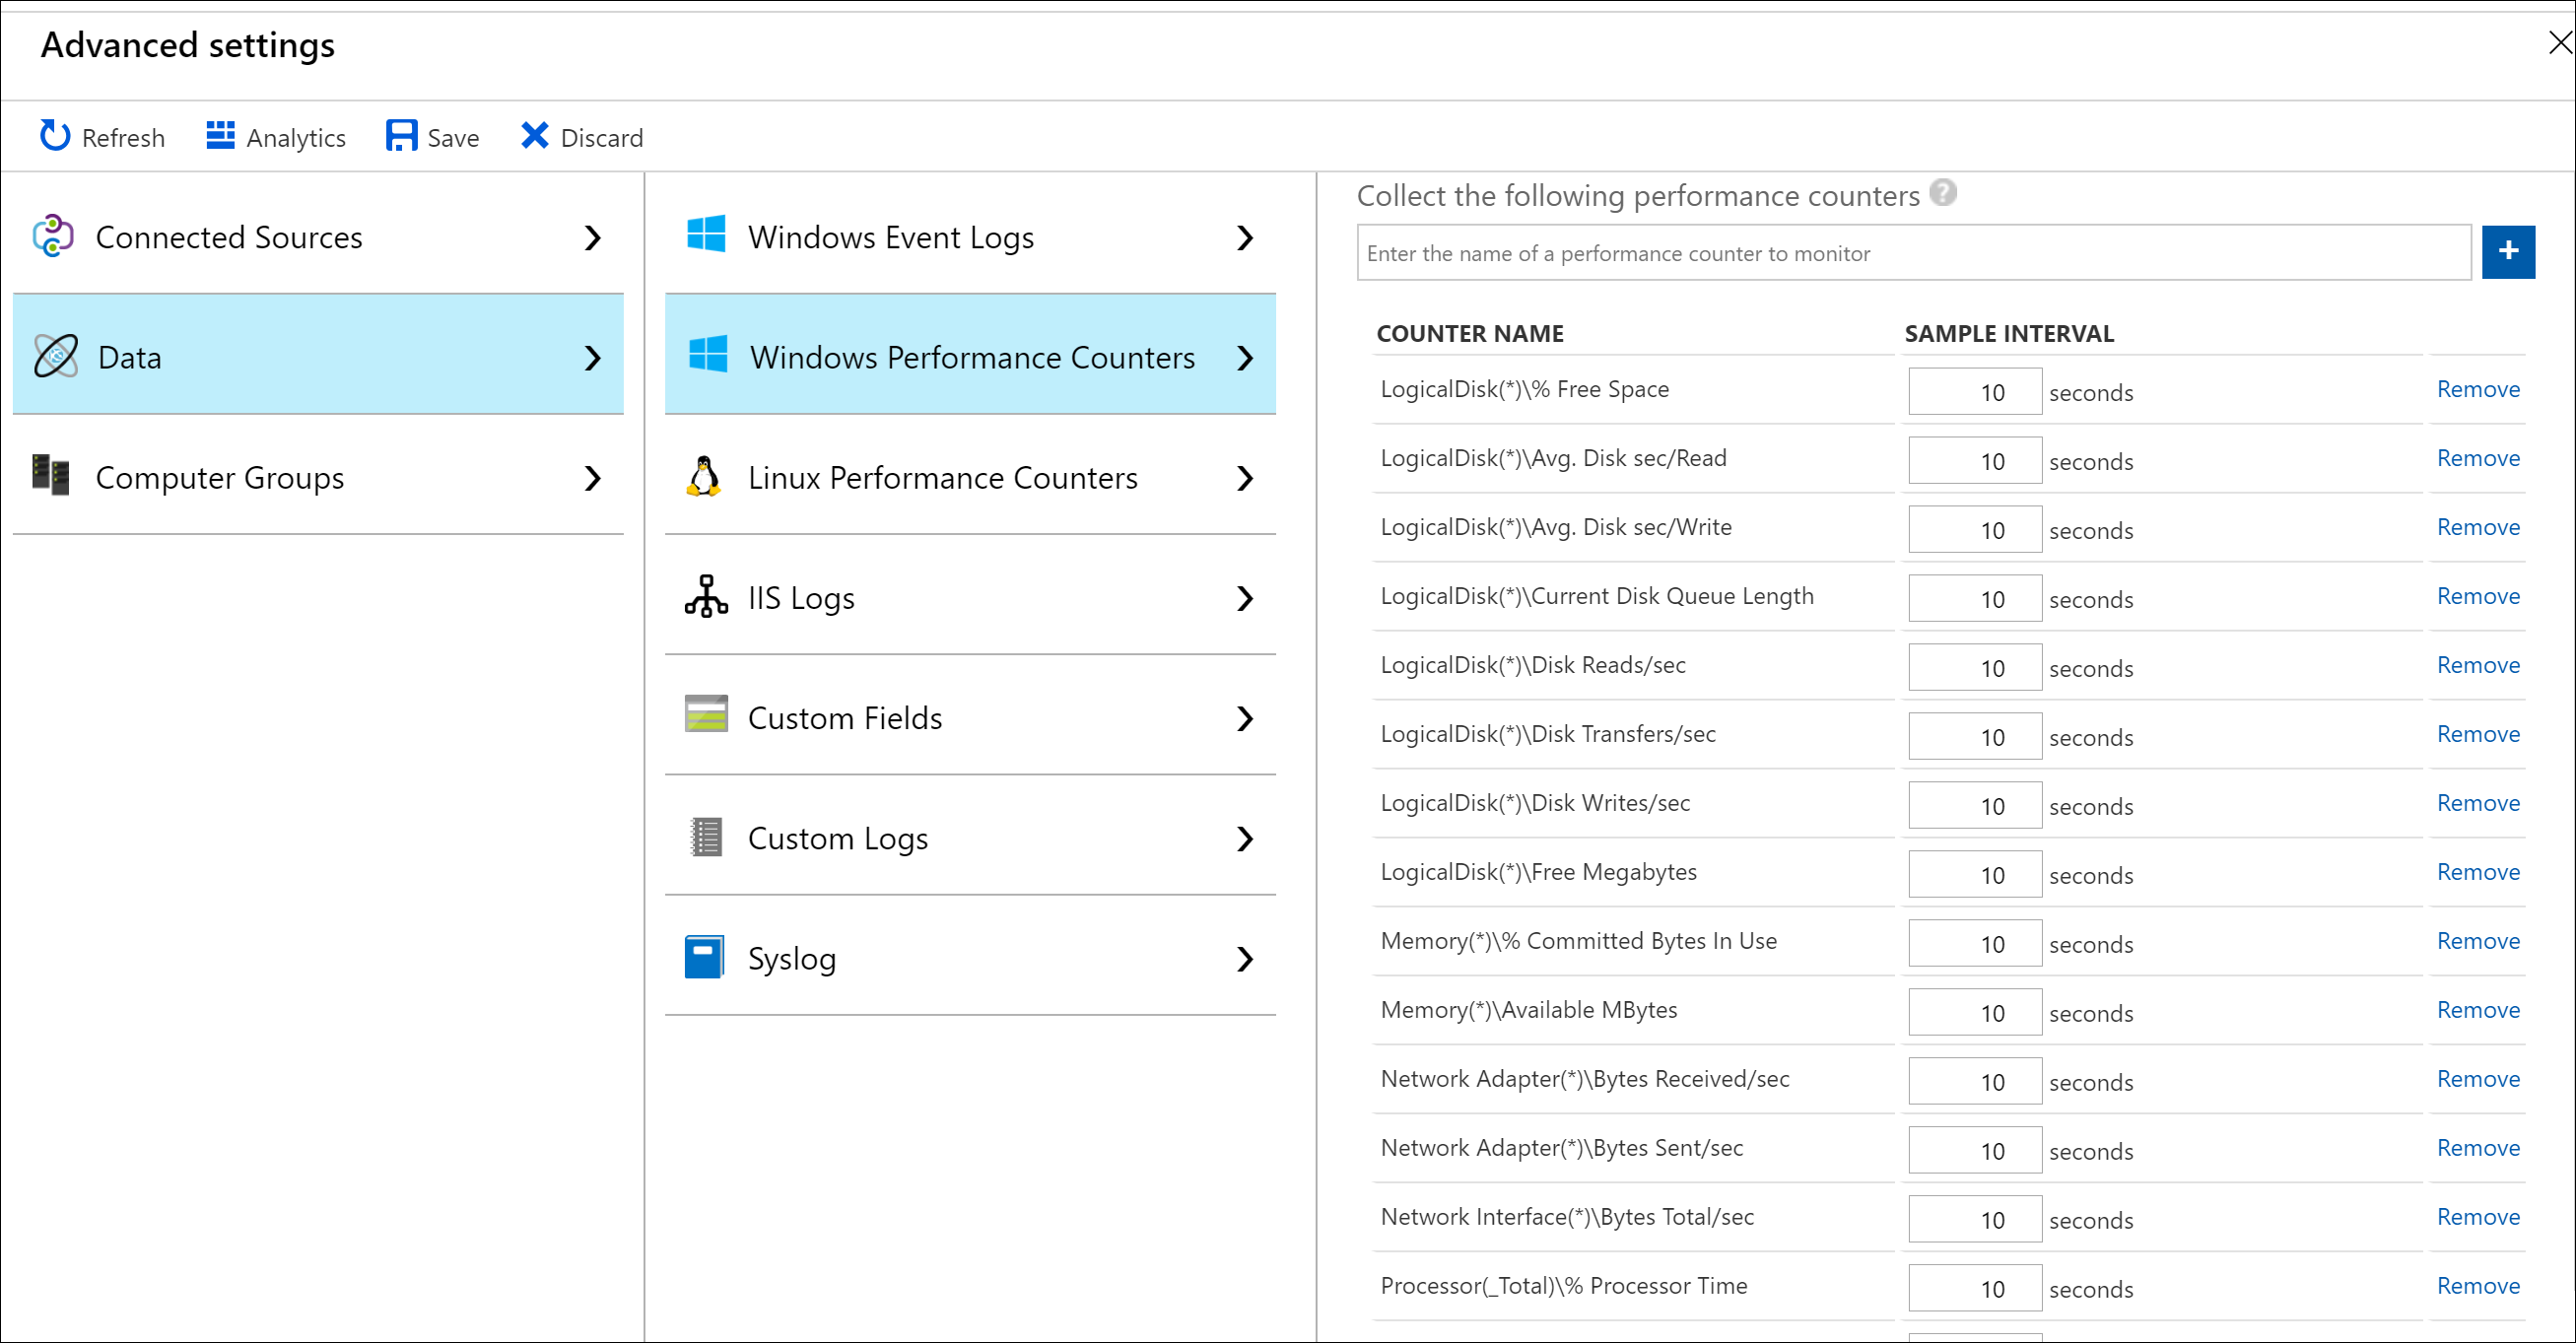 Collect and analyze performance counters in Azure Monitor